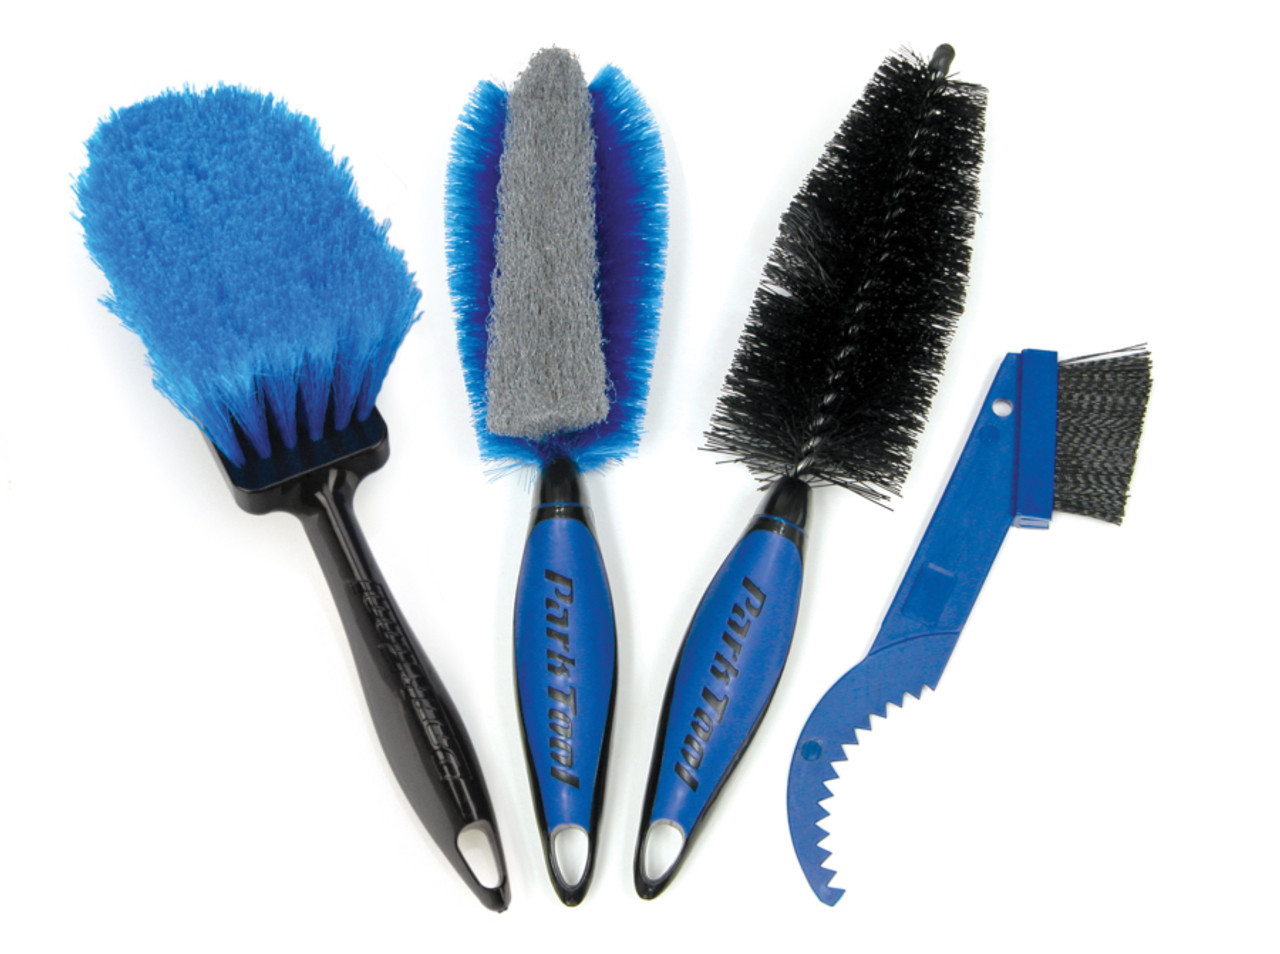 Park Tool Bike Brush Cleaning Set BCB-4.2